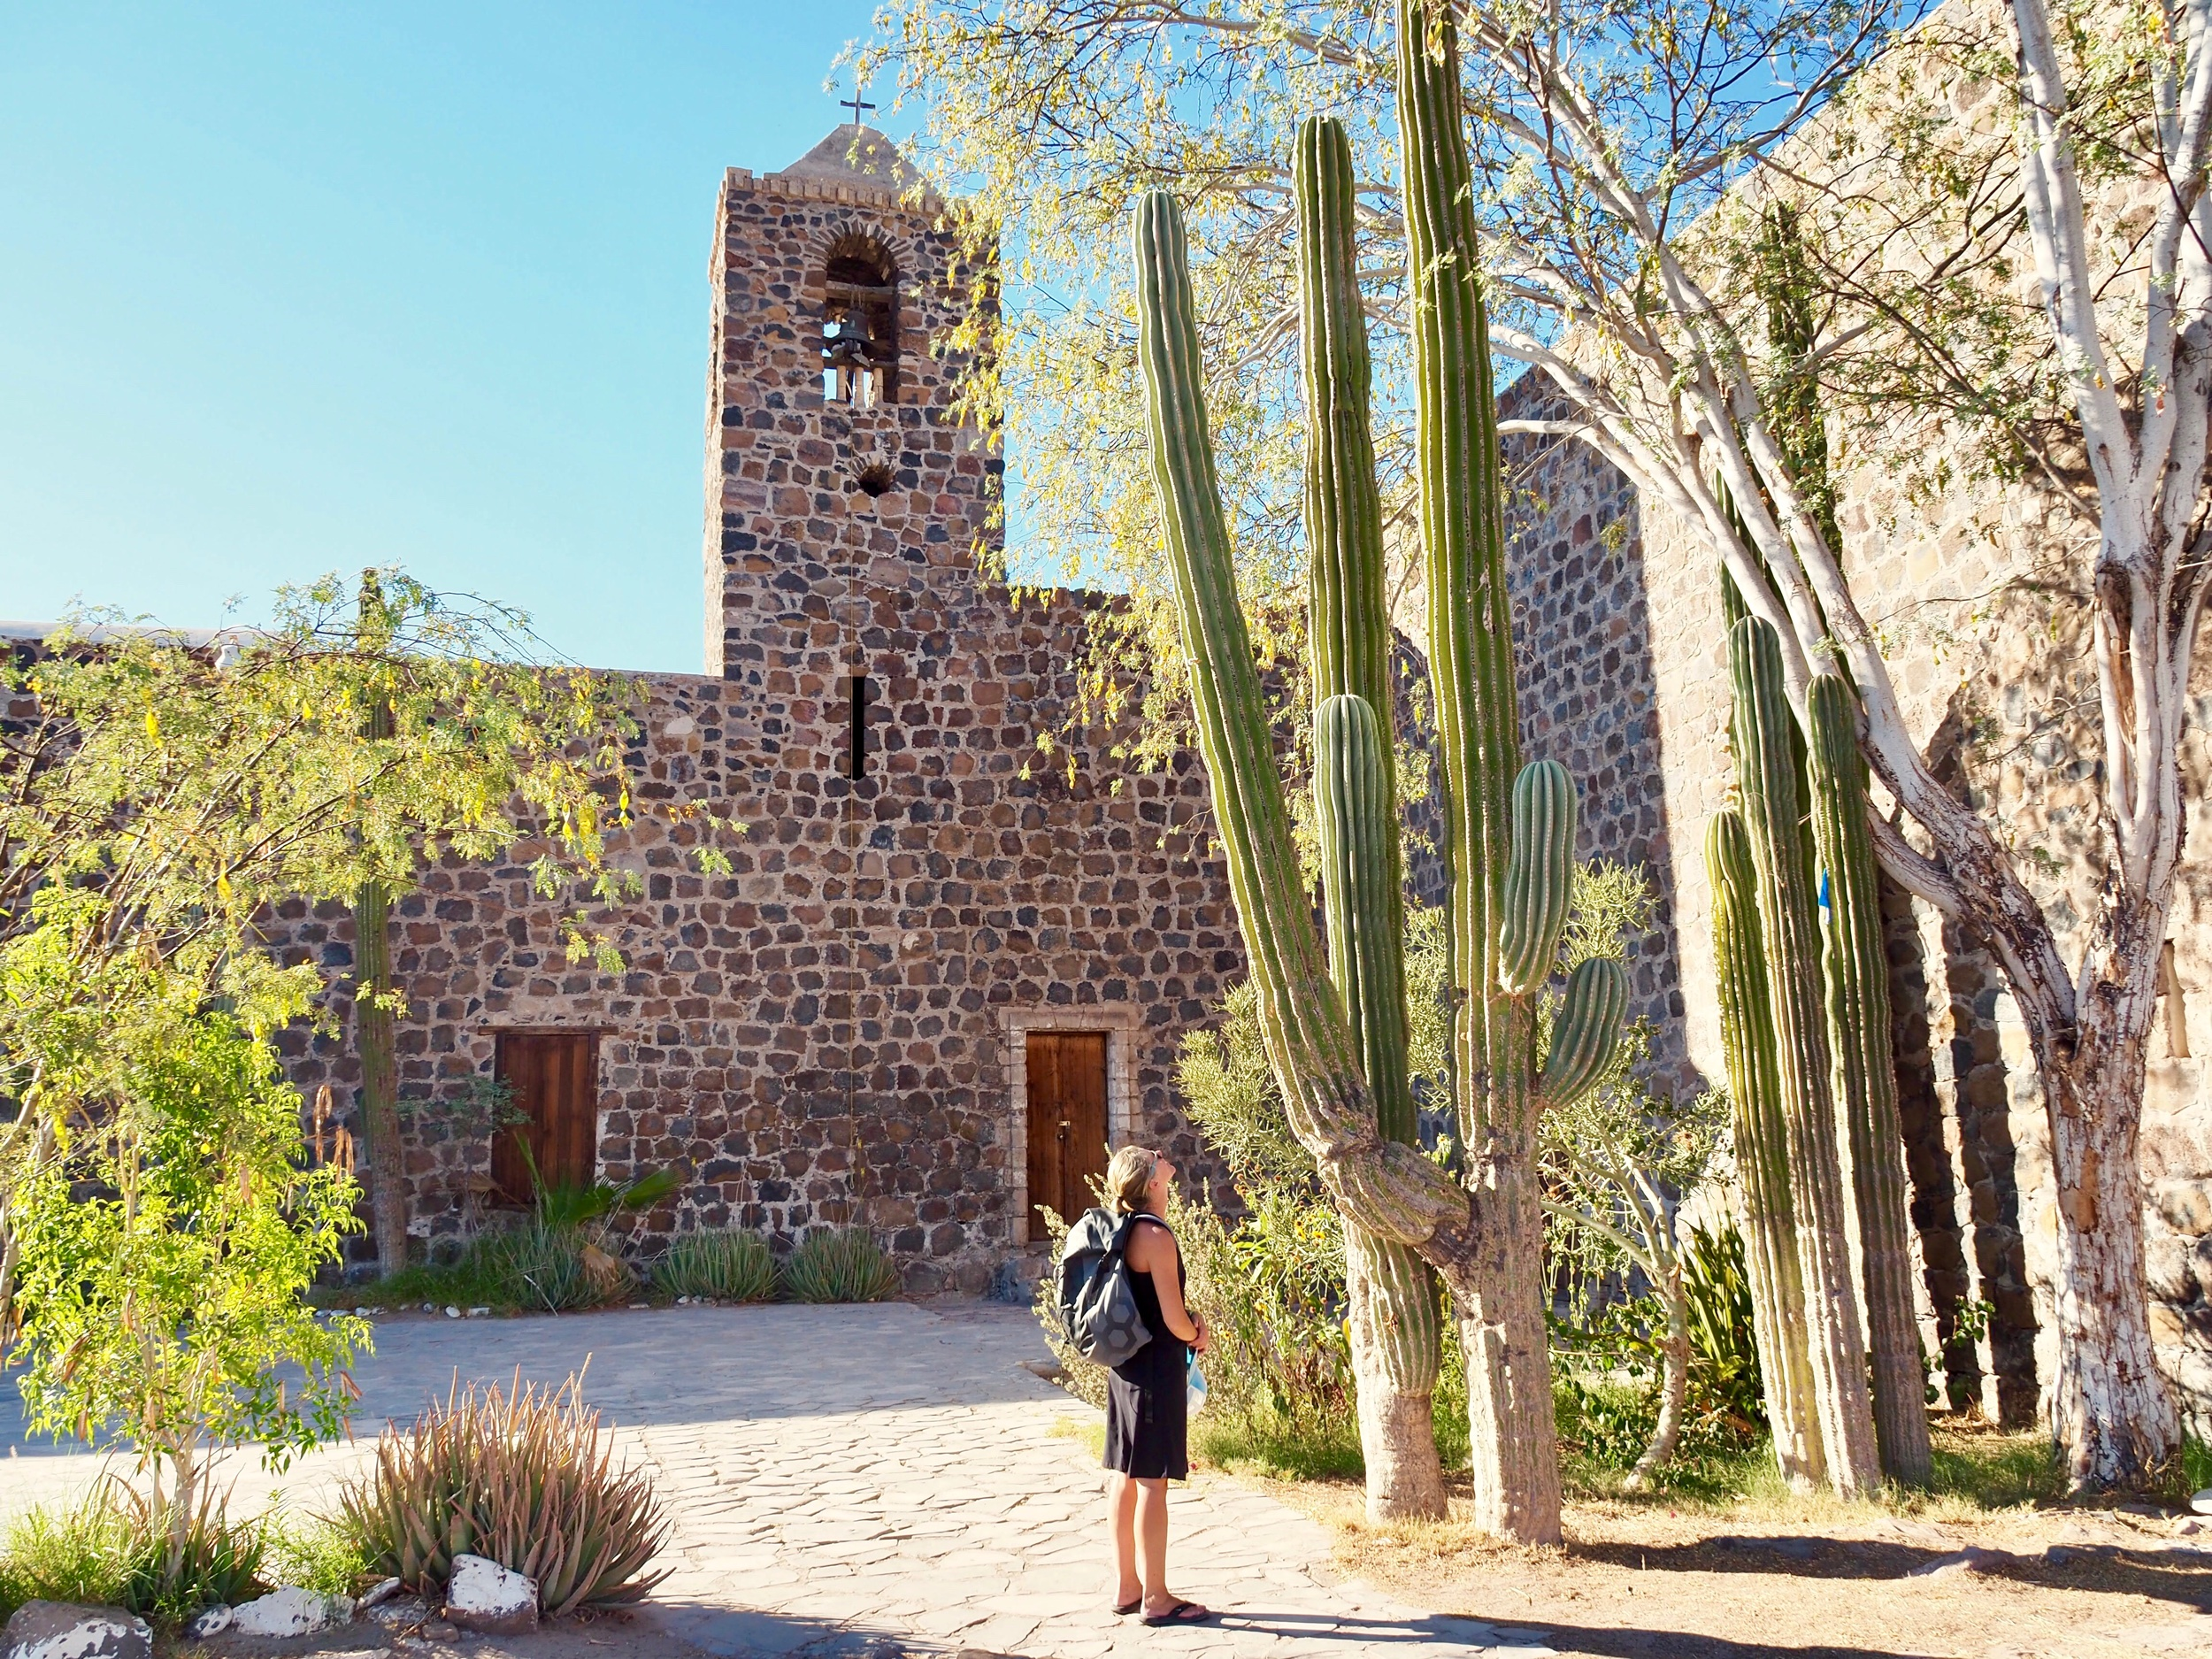 Since many of these Baja towns were founded by missionaries, its no surprise that the missions feature highly